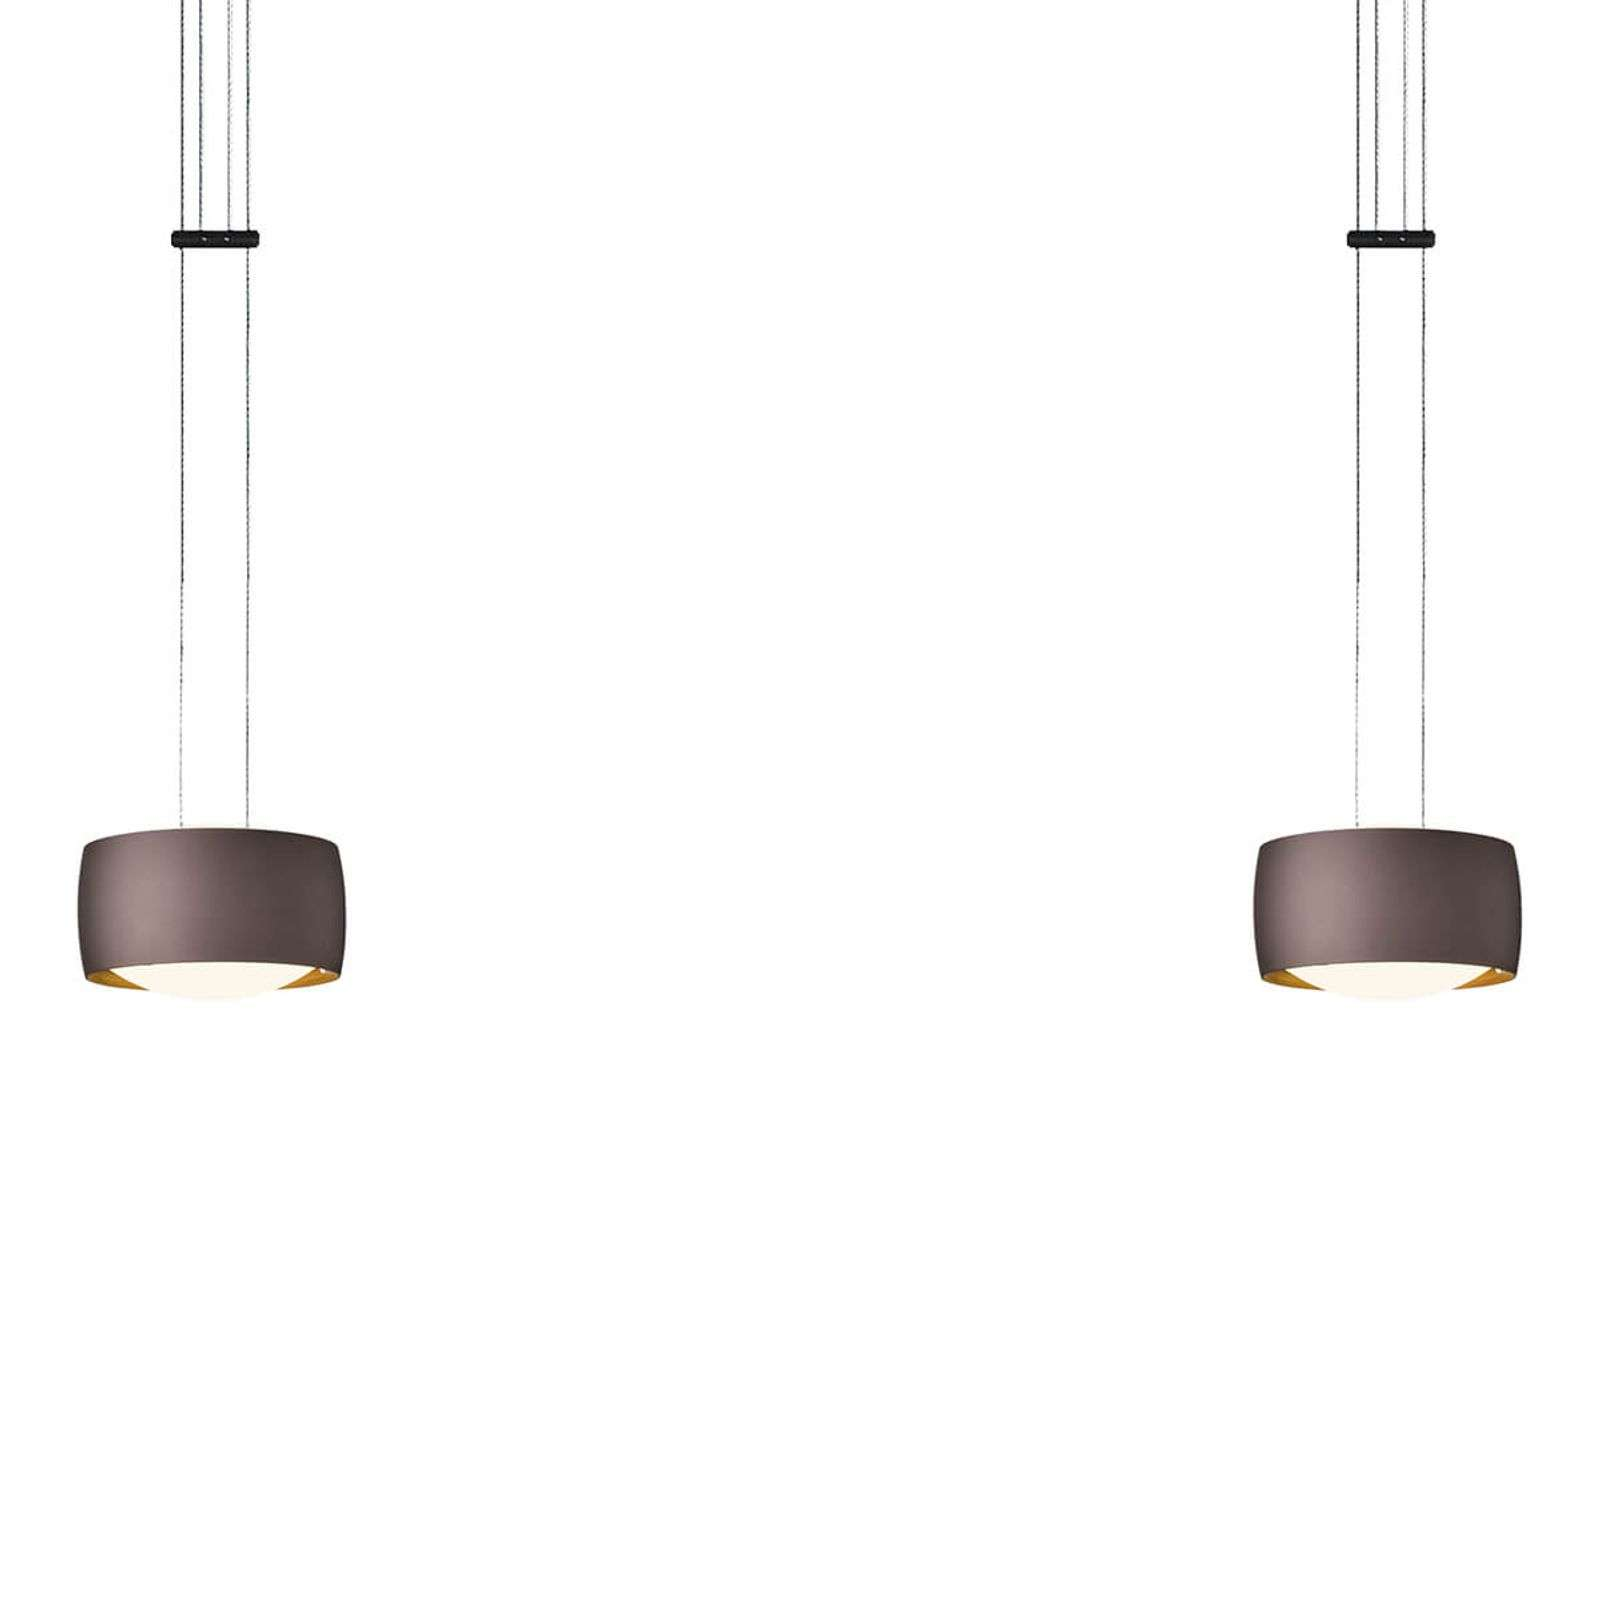 OLIGO Grace lampada LED, 2 luce marrone